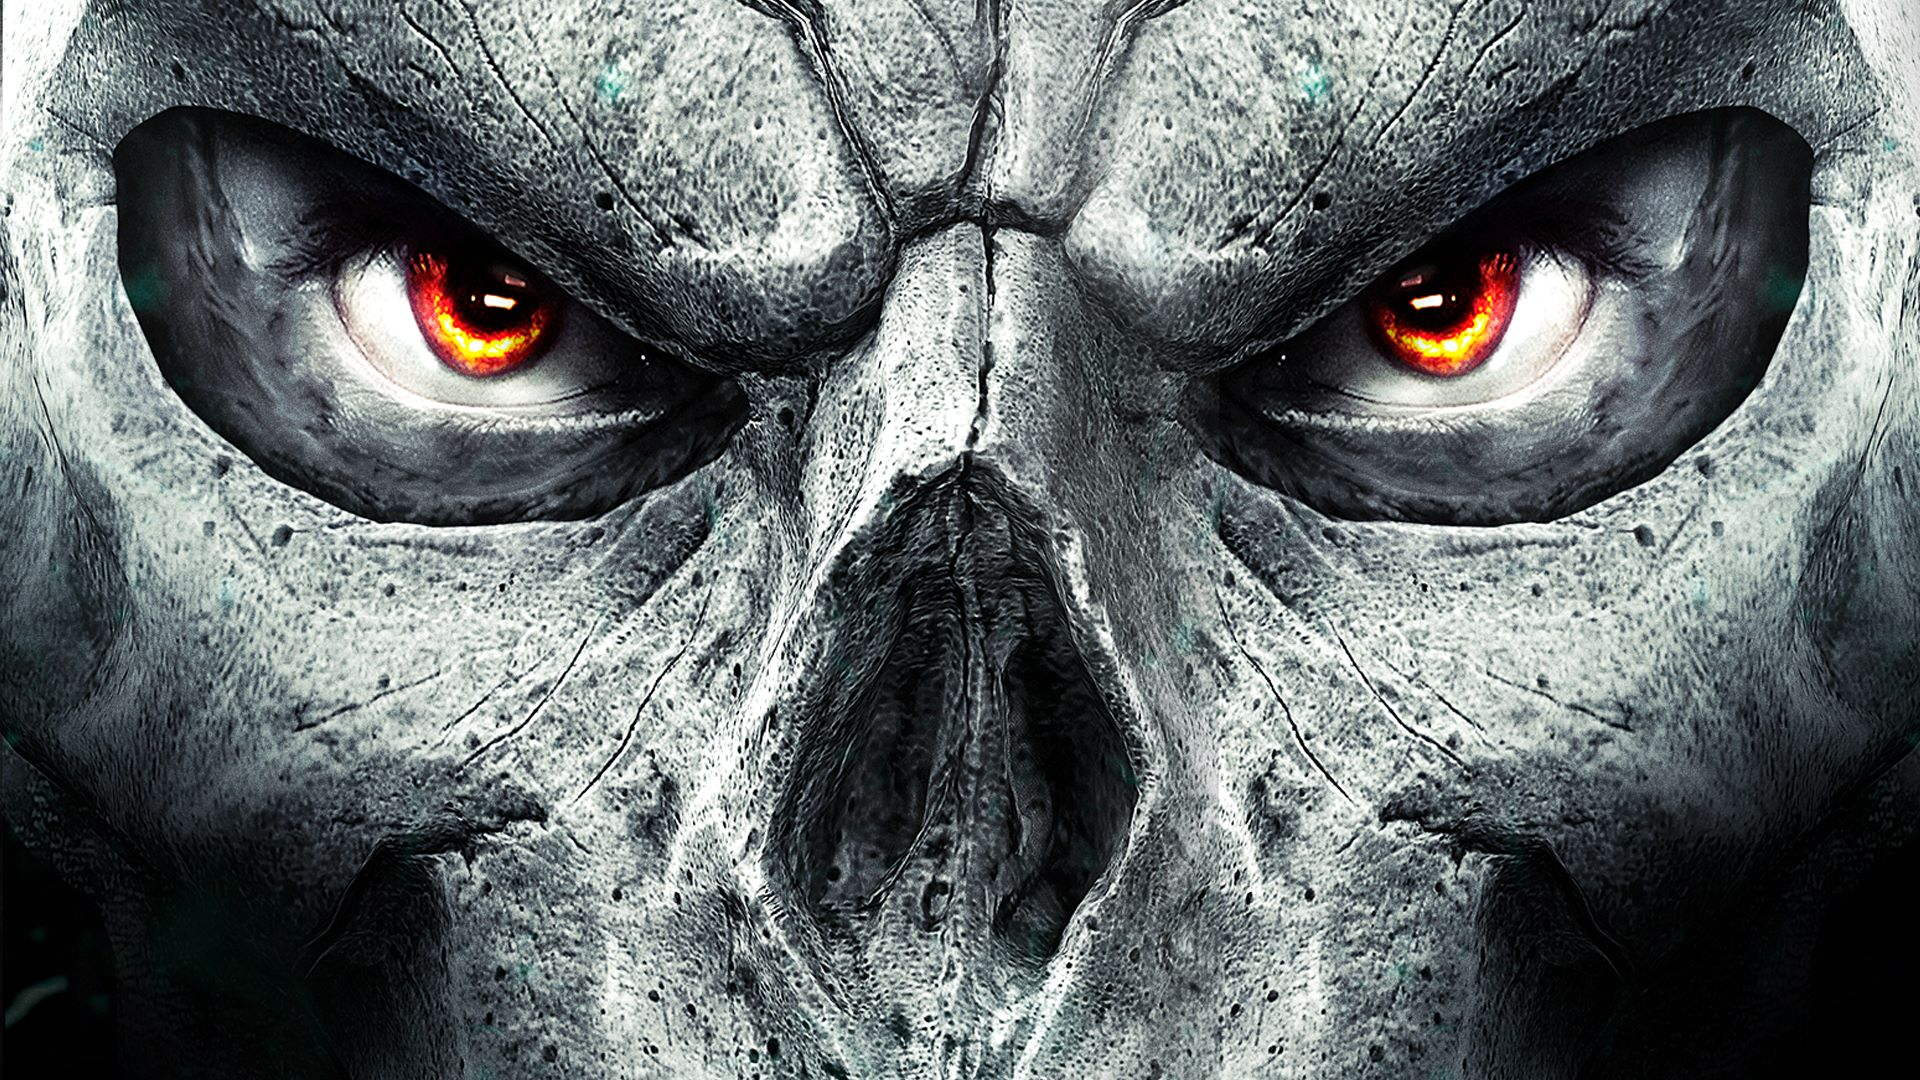 THQ Nordic has gone silent about Darksiders II's Xbox patch